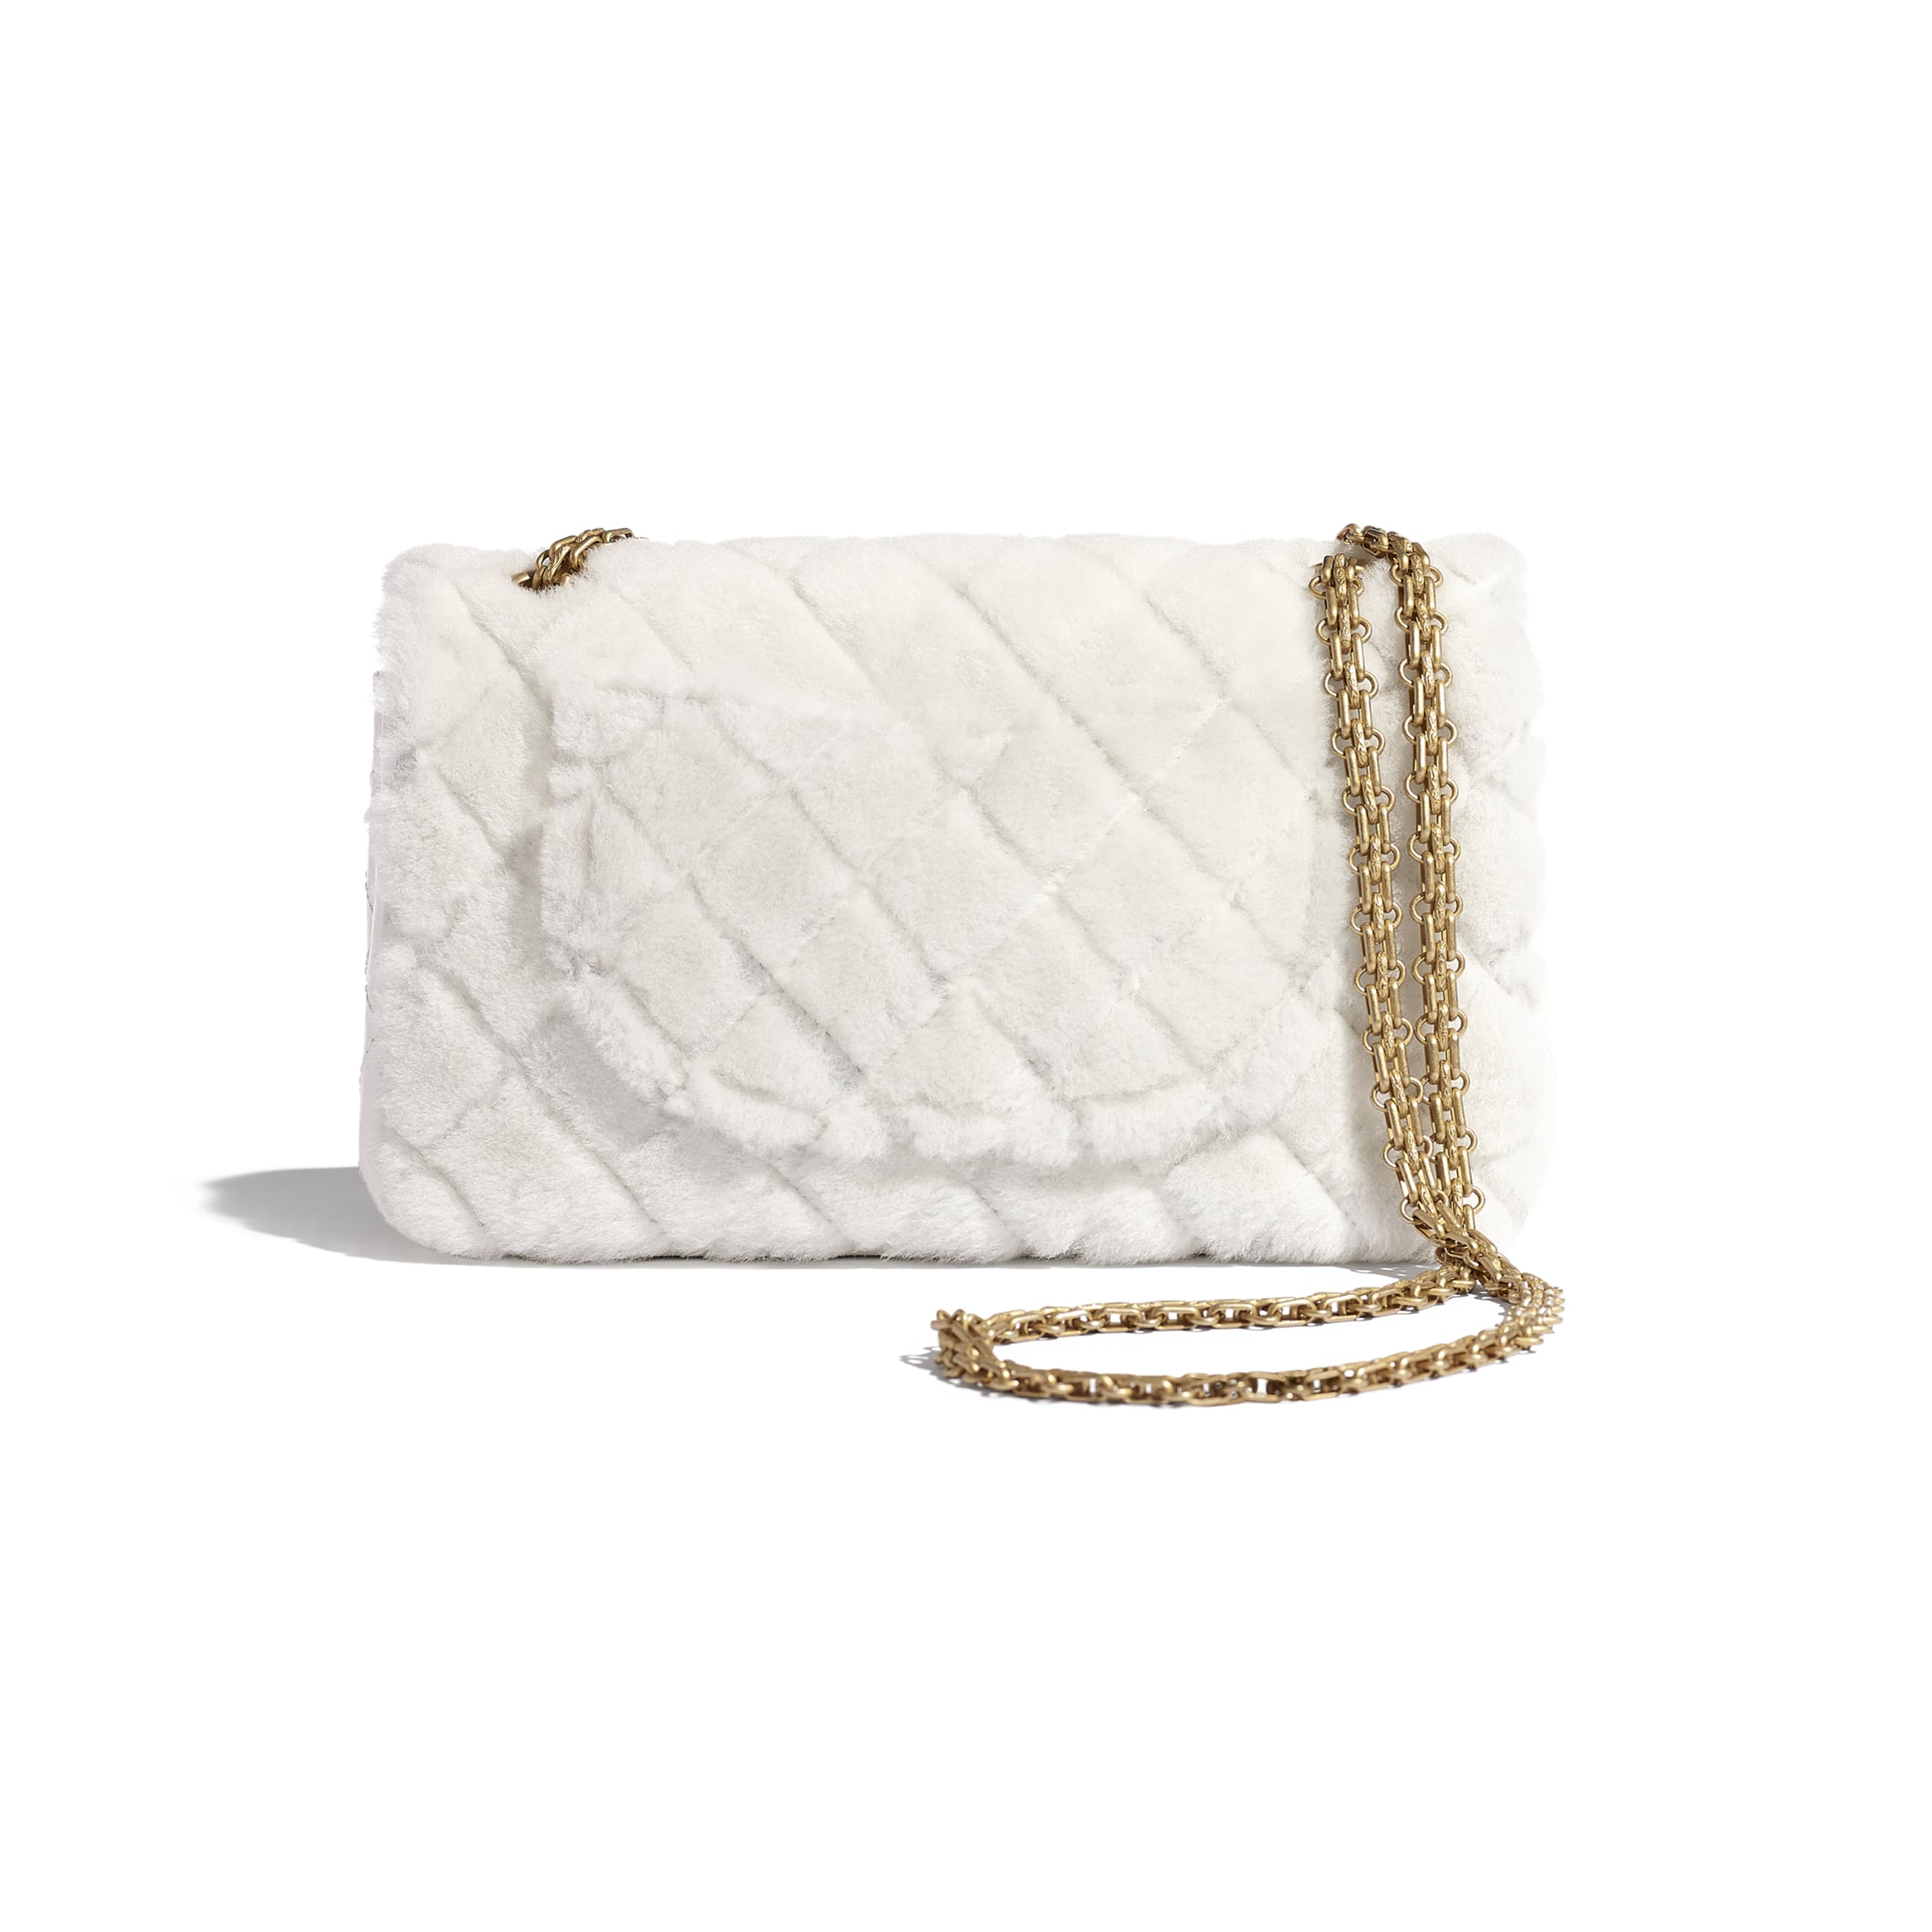 2.55 Handbag - White - Shearling Lambskin, Aged Calfskin & Gold-Tone Metal - CHANEL - Alternative view - see standard sized version